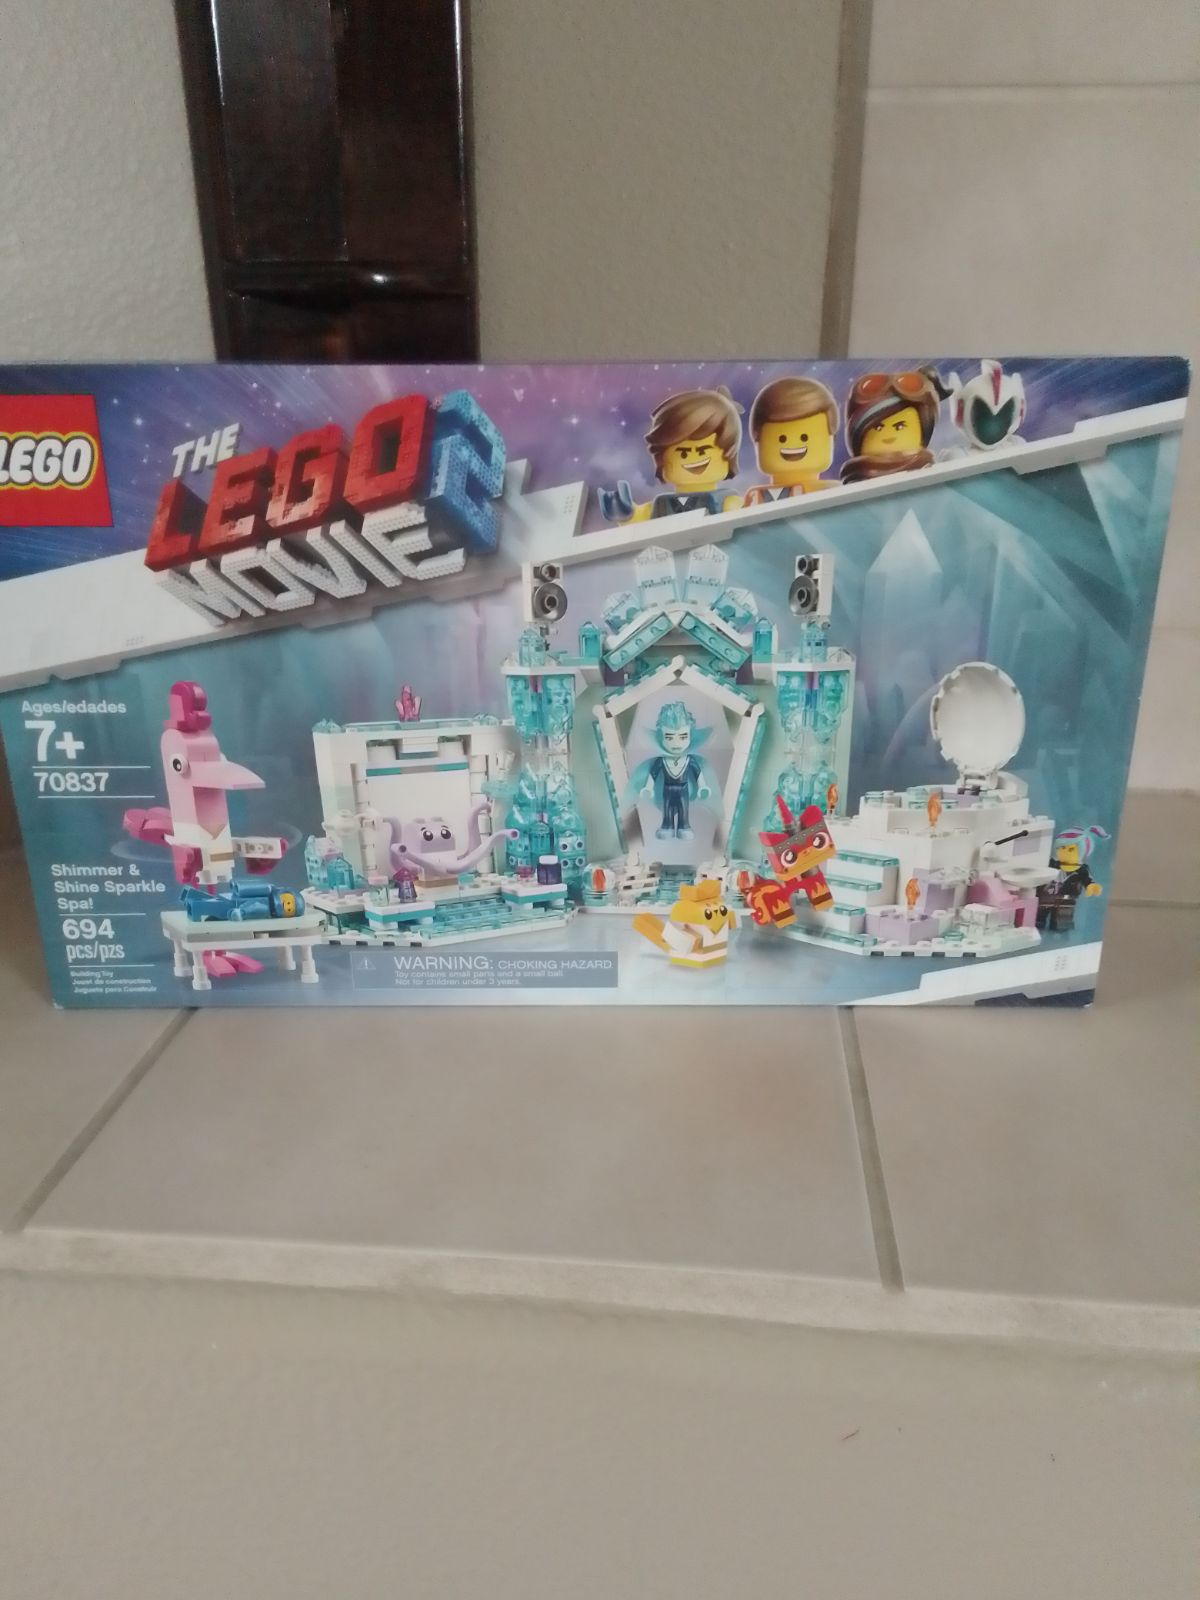 Lego Shimmer and Shine Sparkle Spa!